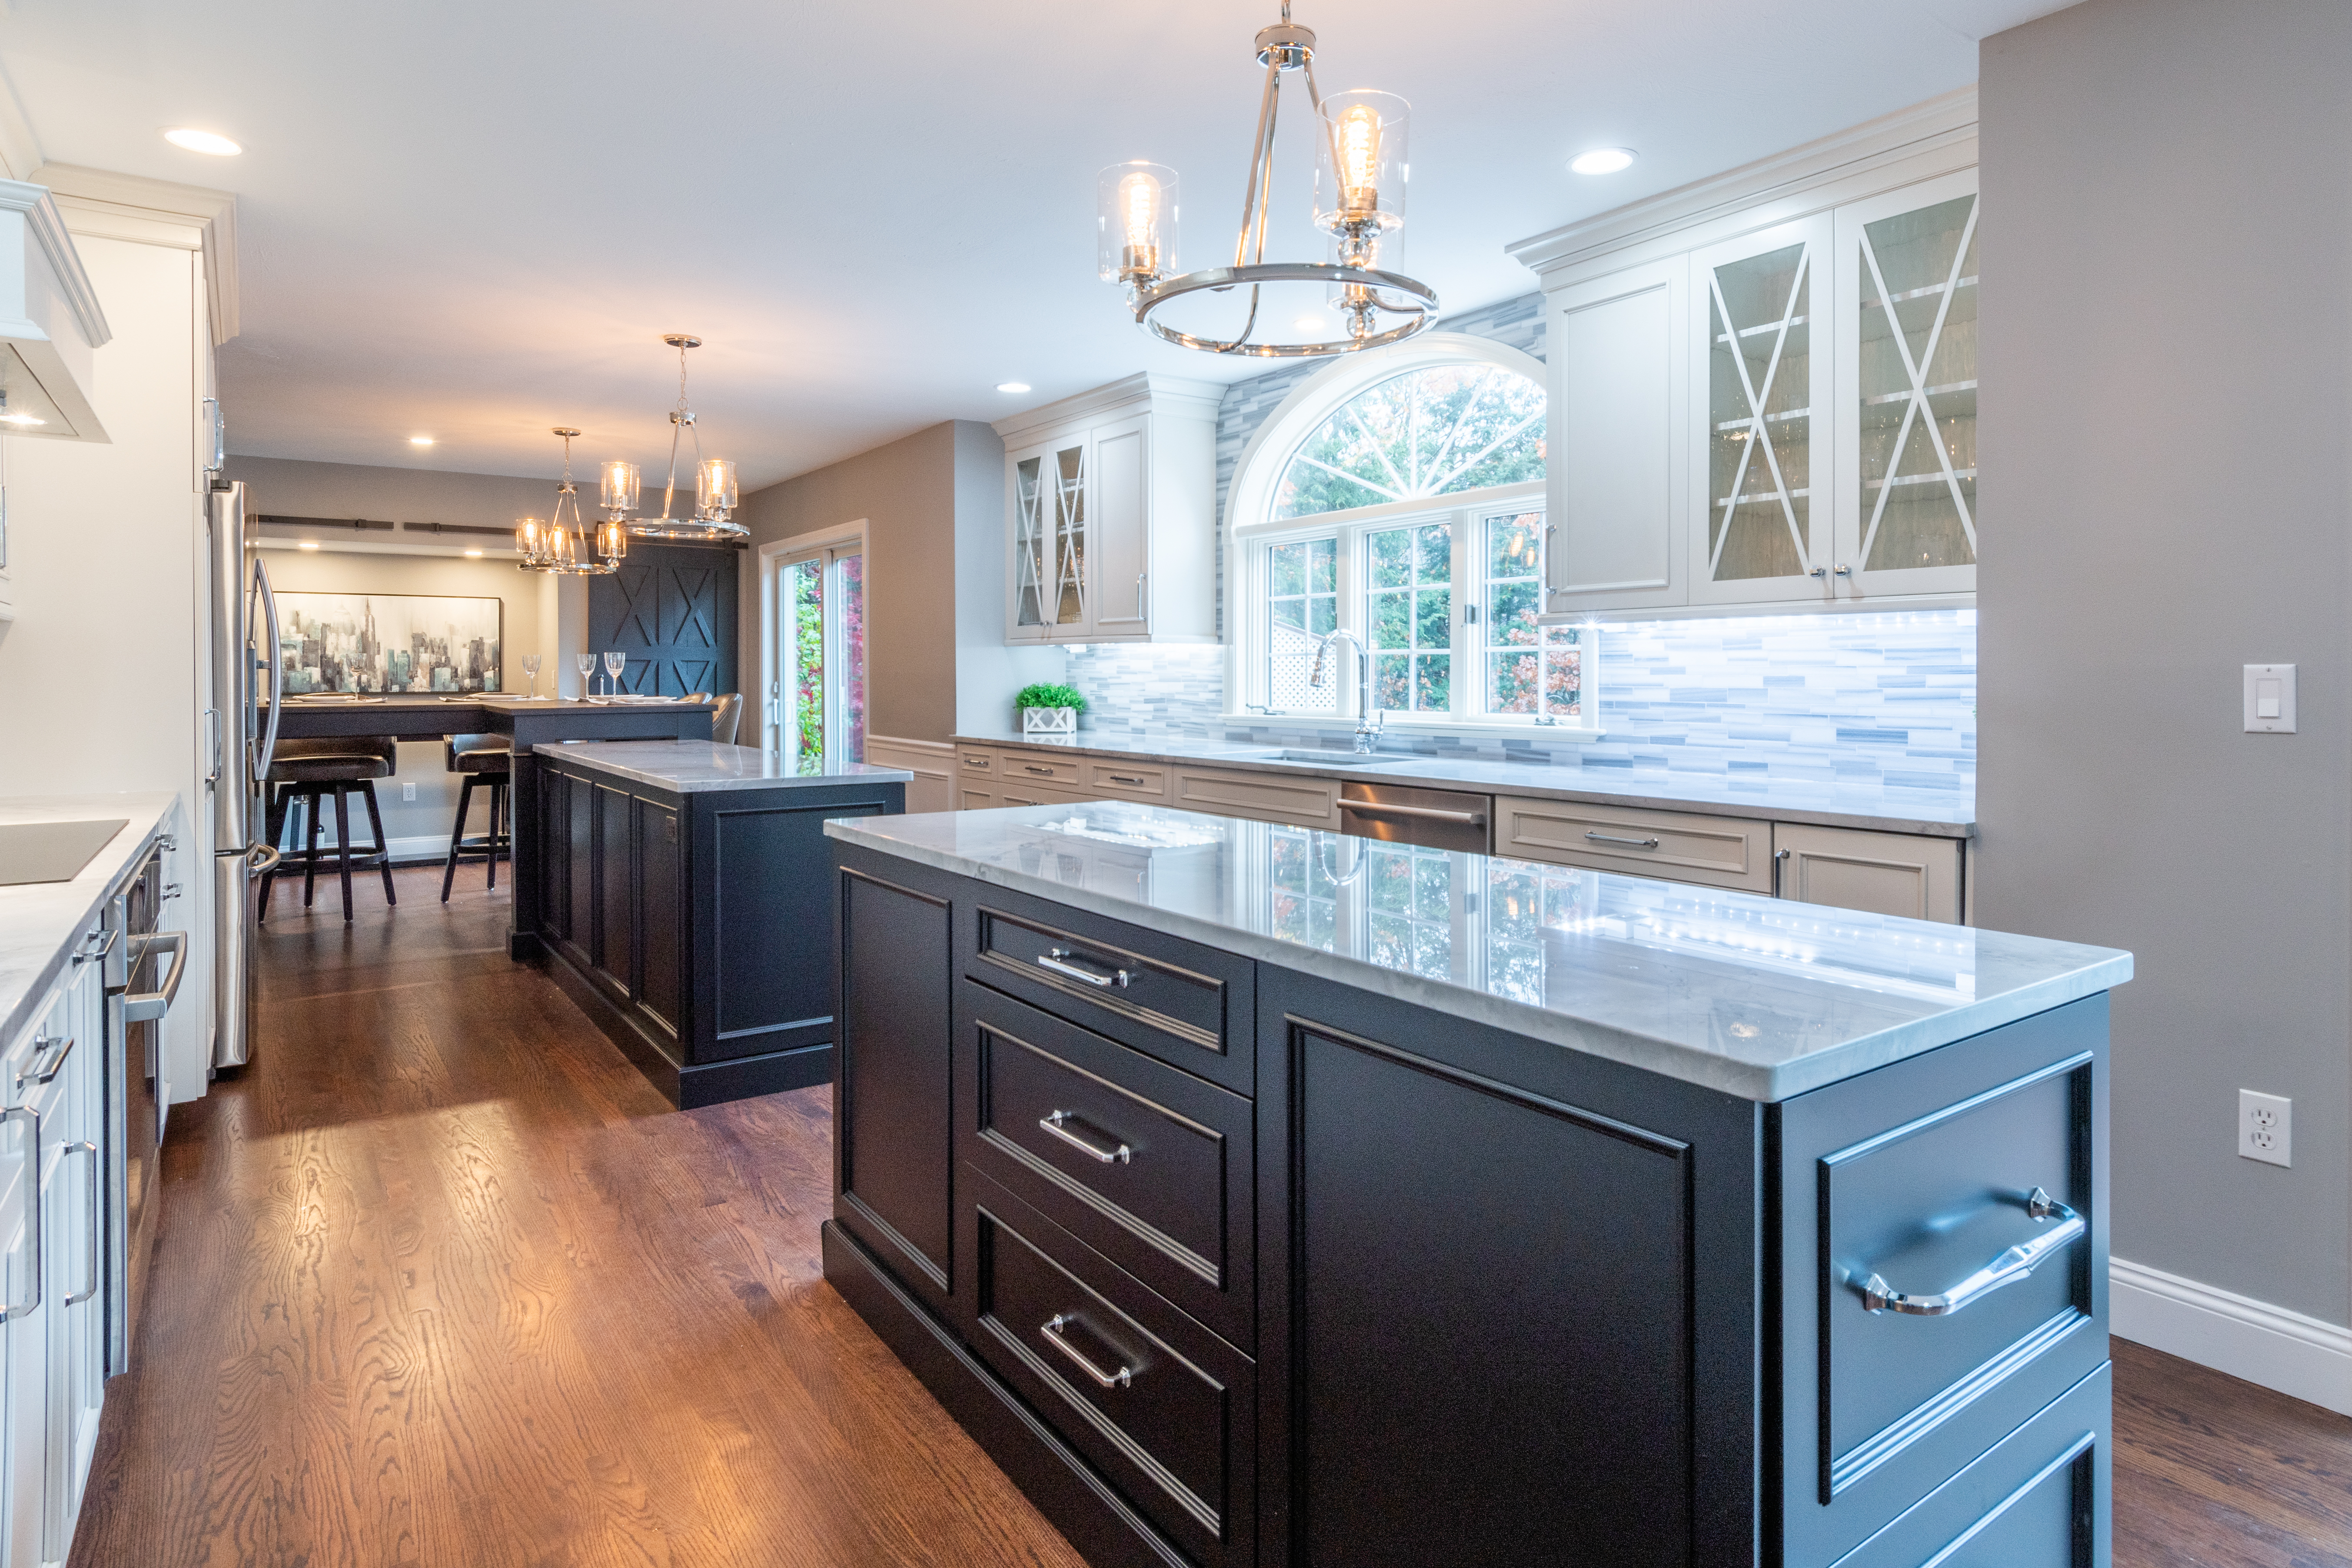 2020 Excellence In Kitchen Design Renovation Honorable Mention Bedford Elegant Kitchen New Hampshire Home Magazine